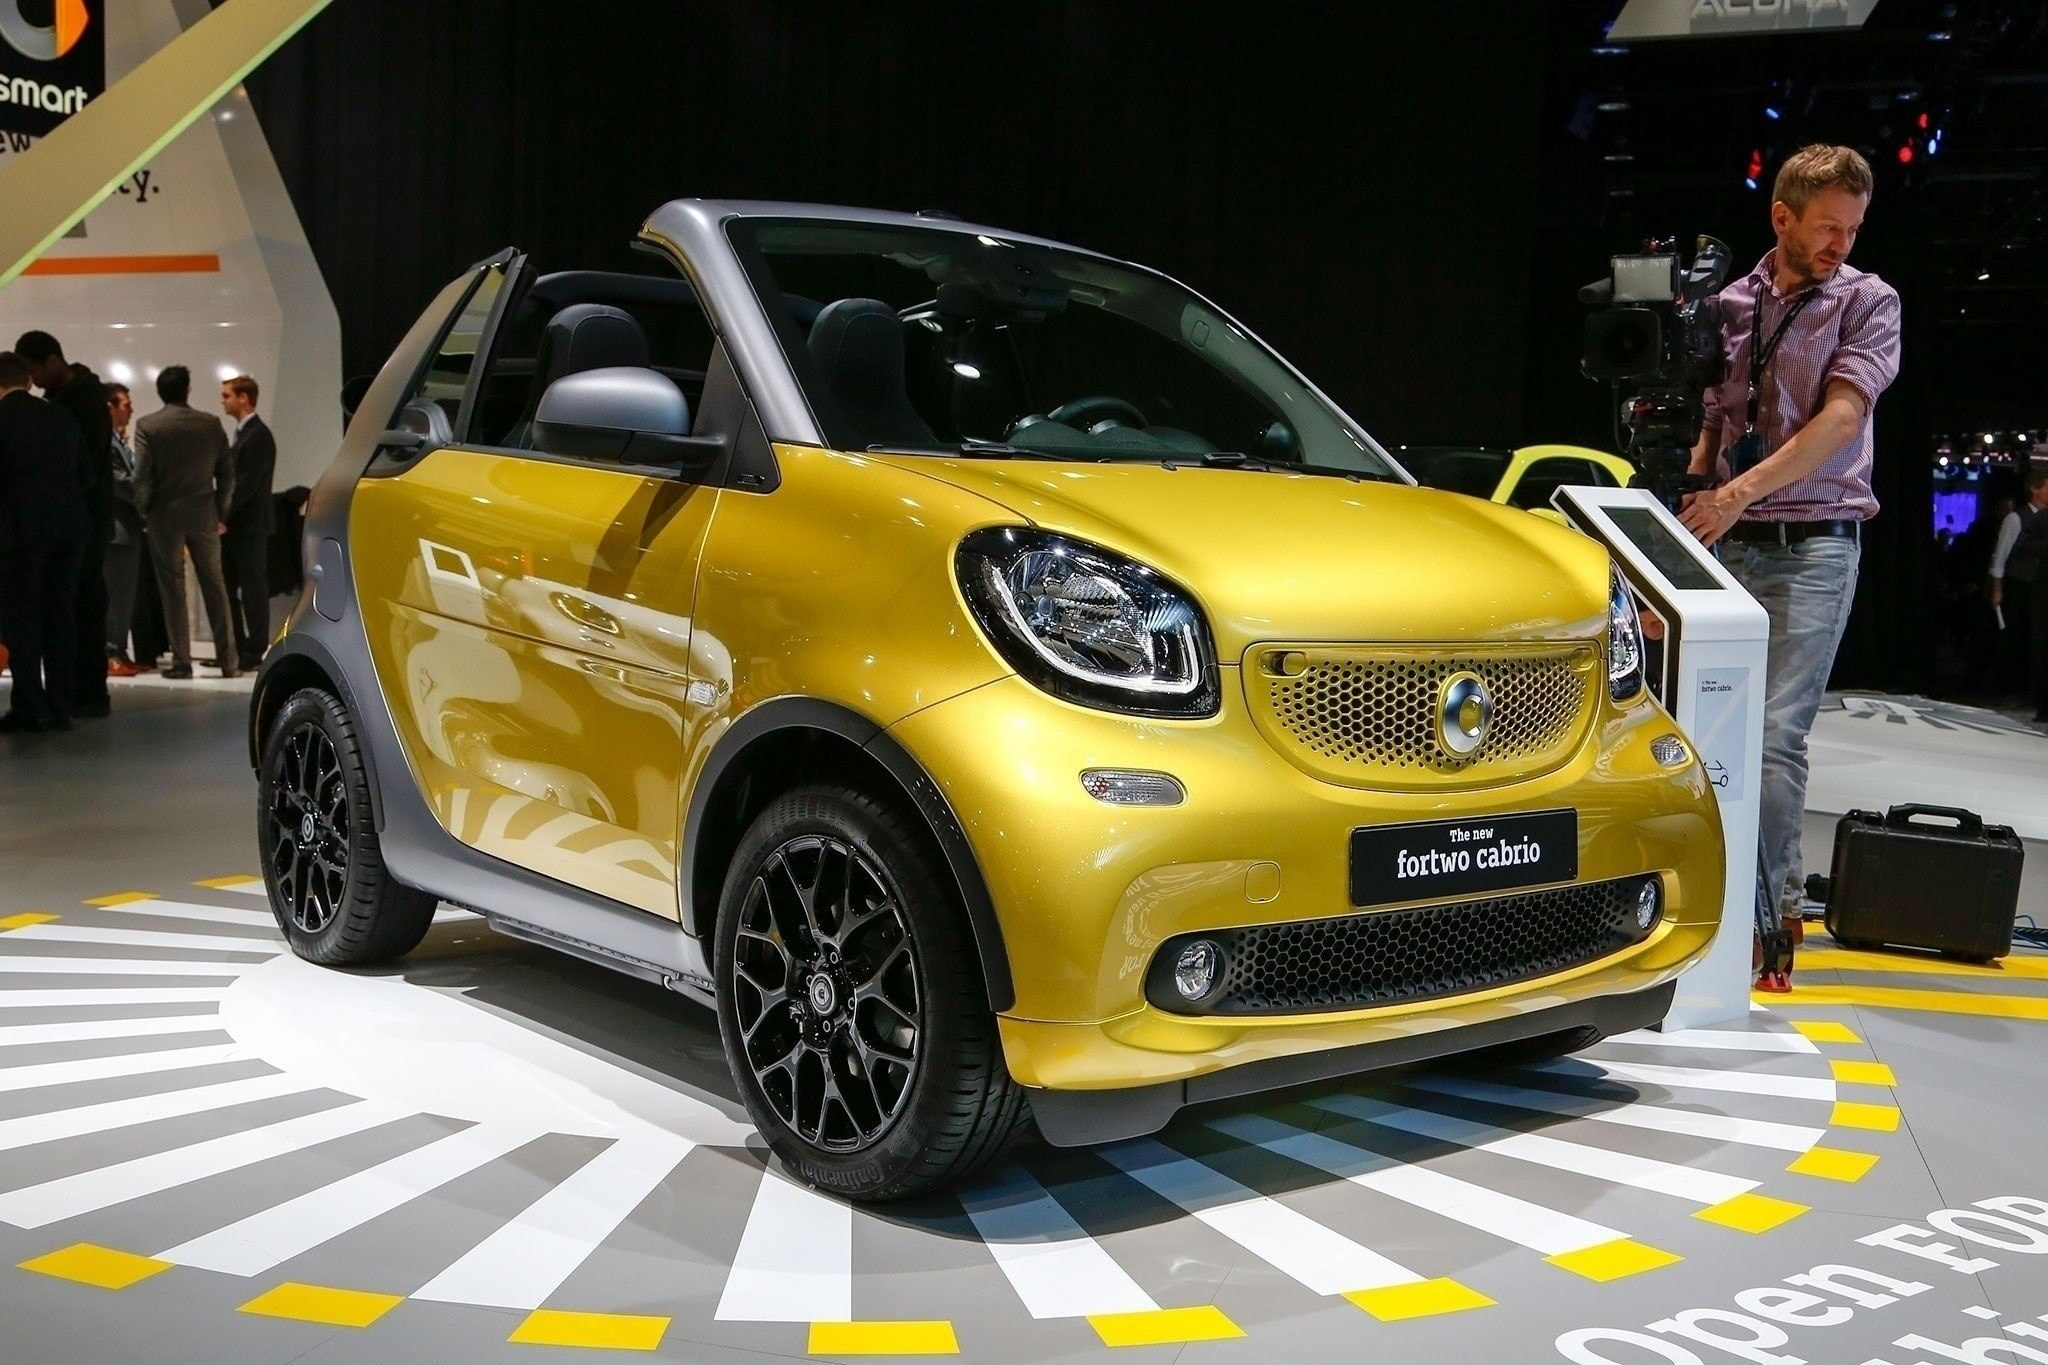 2020 Smart Fortwos Price and Release date Smart fortwo